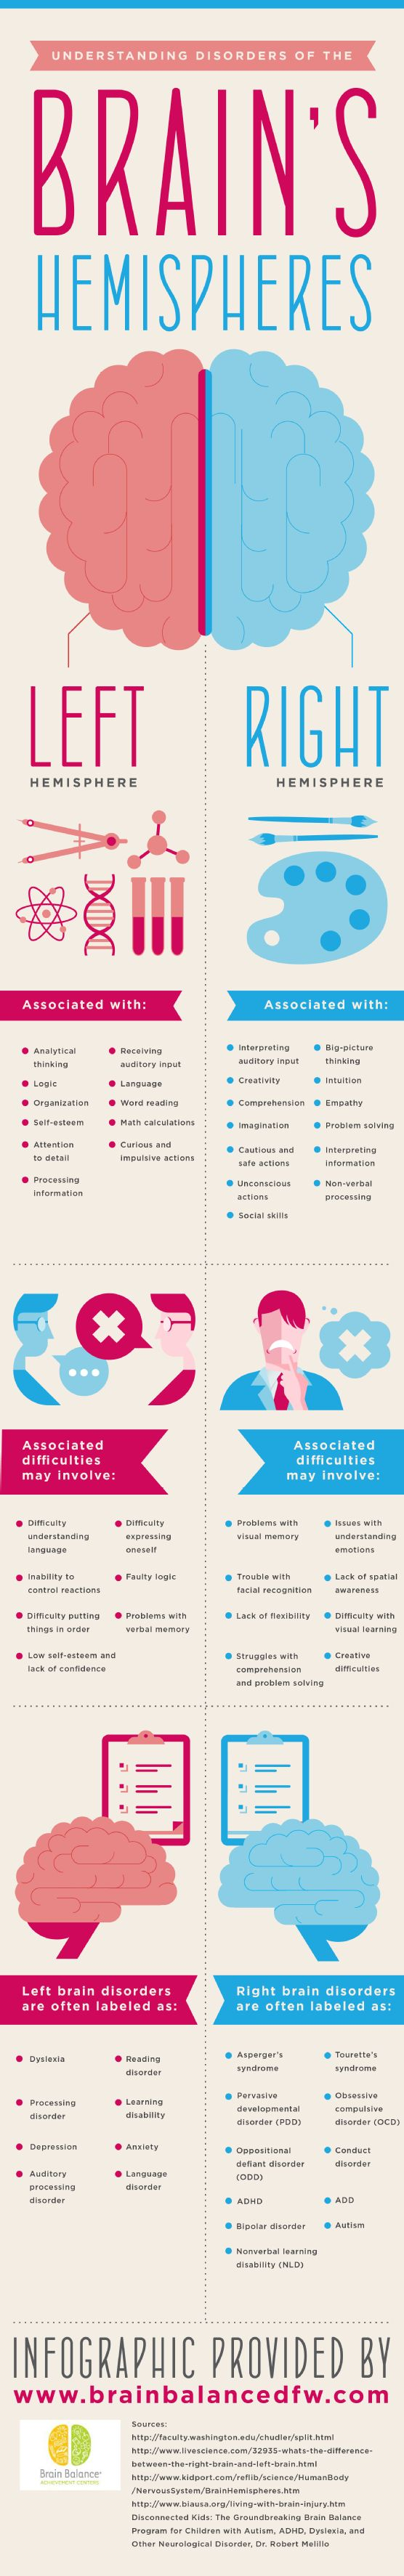 Understanding Disorders Of The Brain's Hemispheres. | Infographic